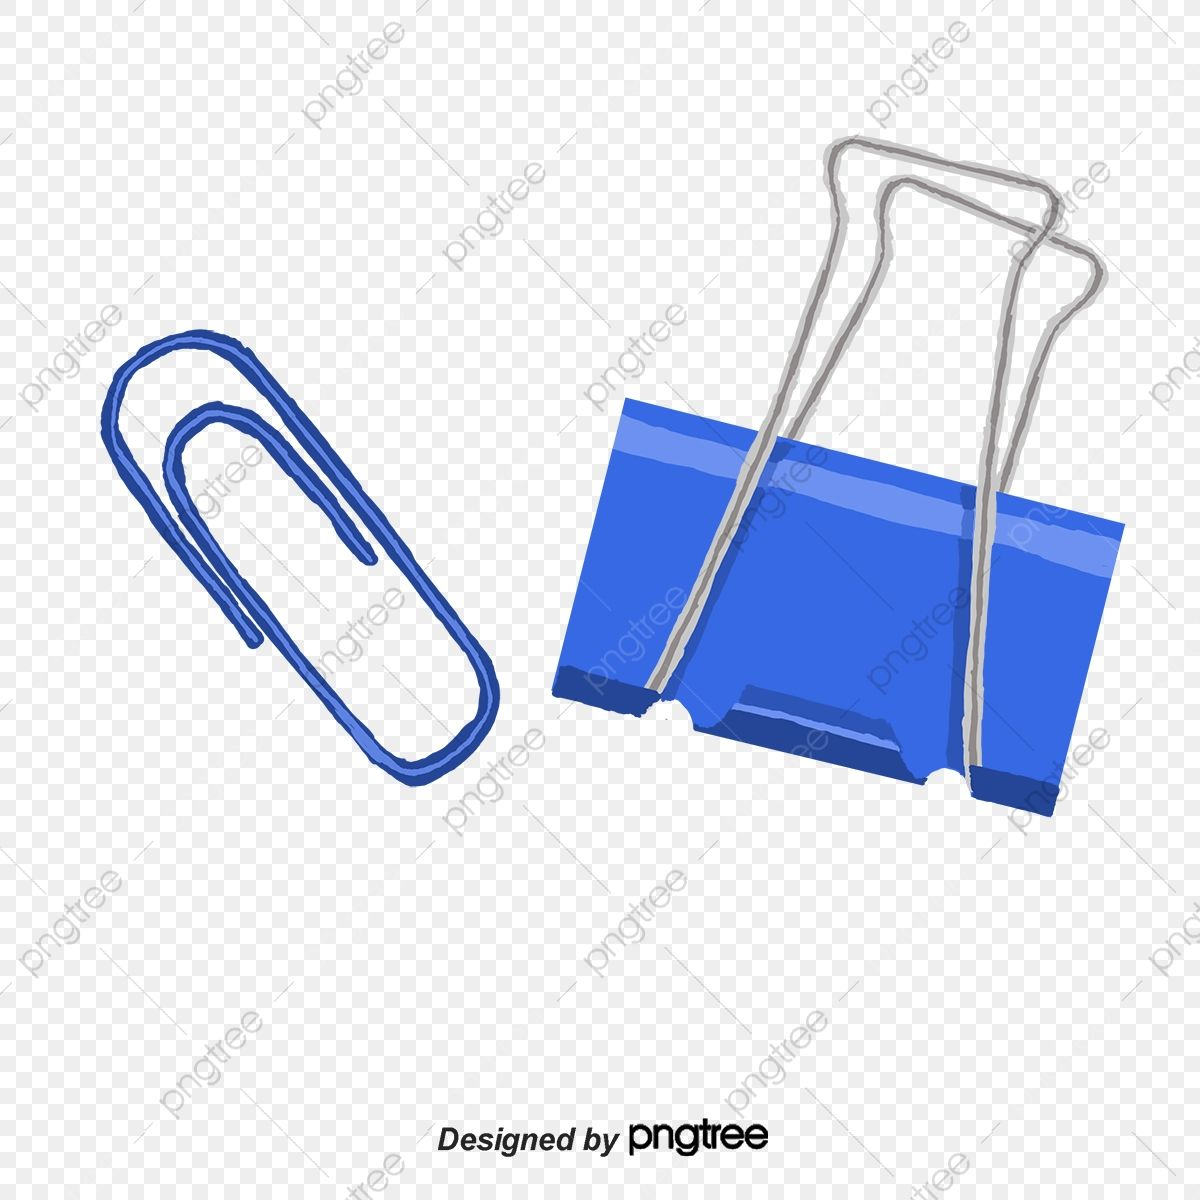 Clip Png Vector Material Clip Paper Clip Office Png Transparent Clipart Image And Psd File For Free Download Paper Clip Png Paper